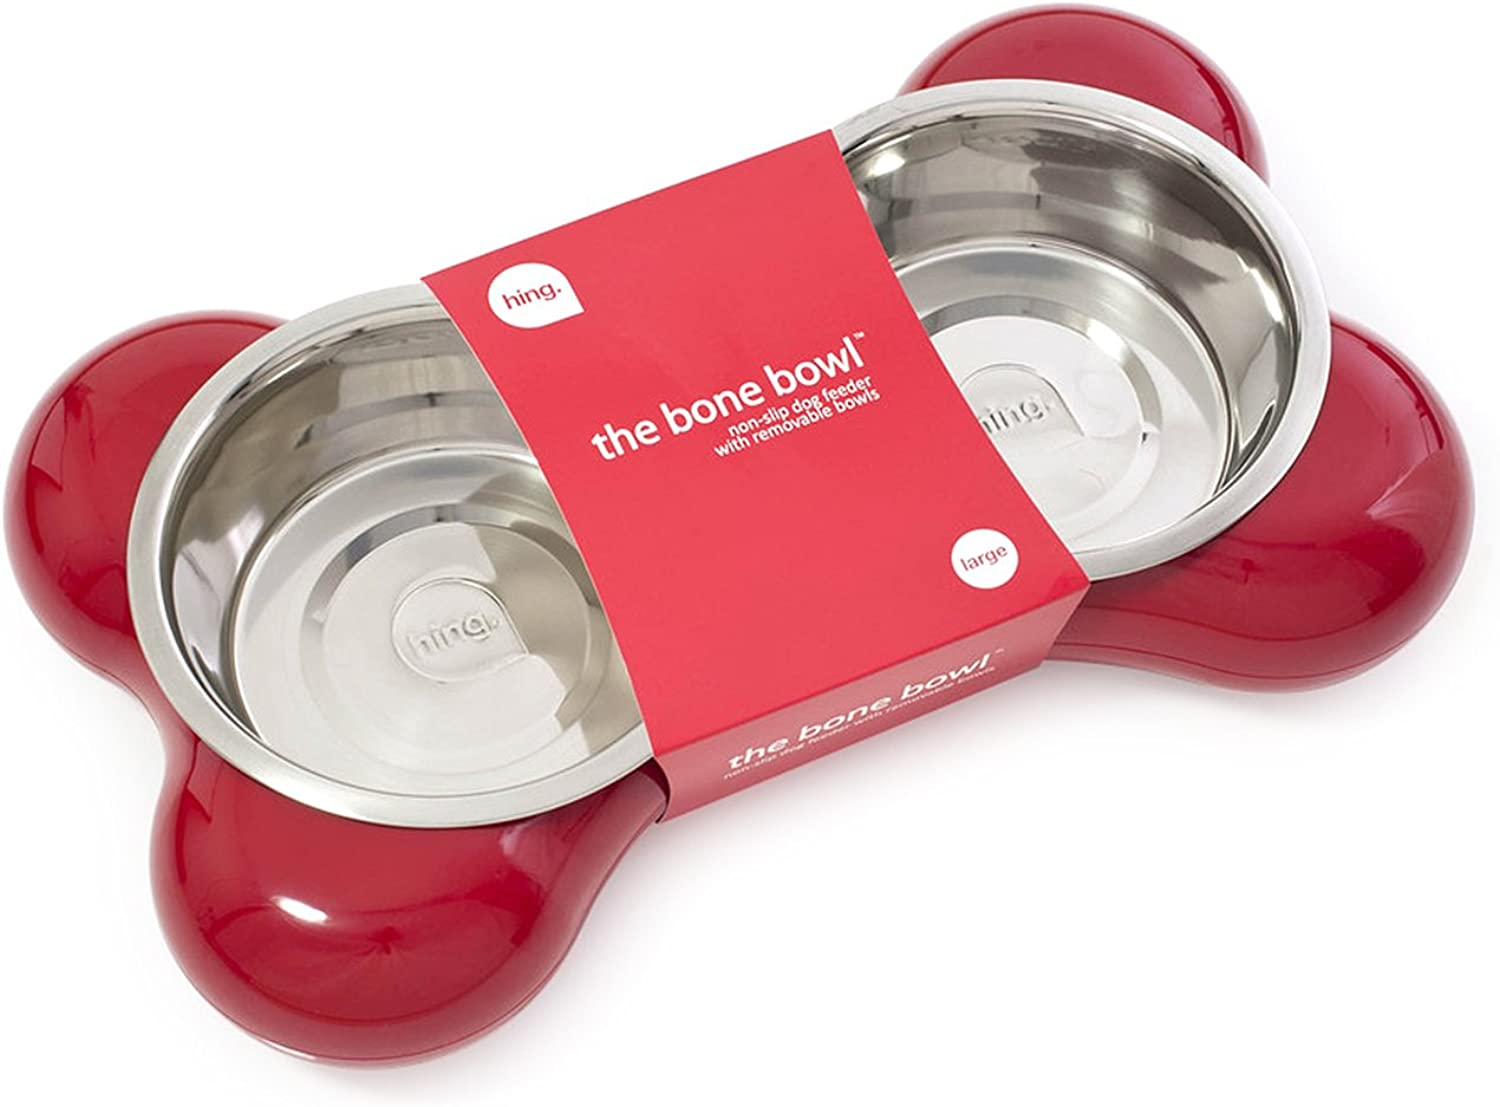 Hing Bone Non Slip Dual Dog Feeding Station with Removable Bowls, Large, Red